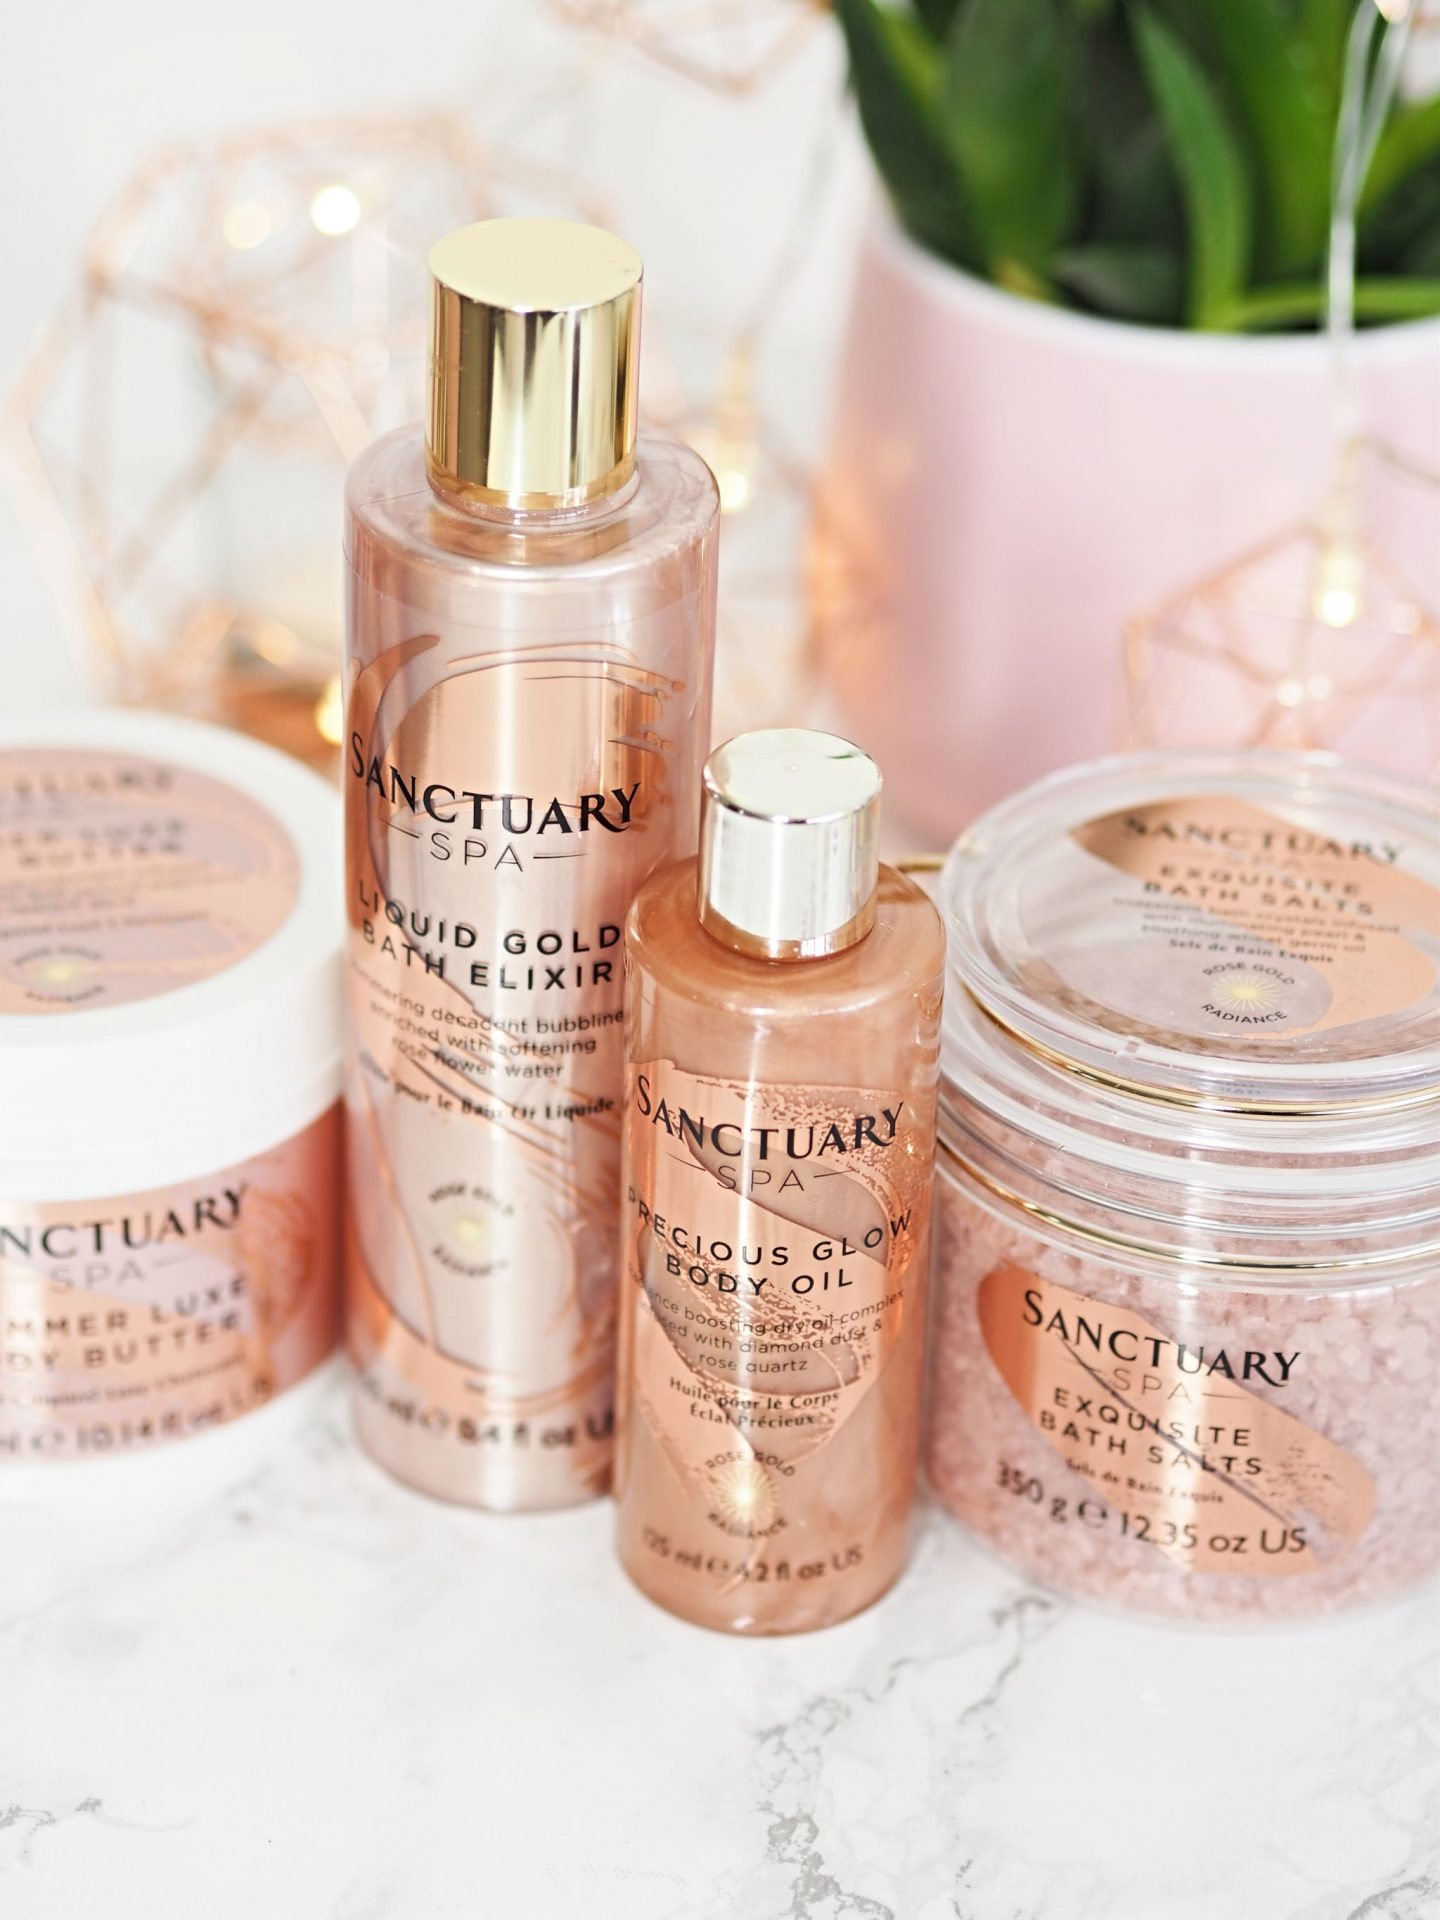 Sanctuary Spa Rose Gold Radiance Range